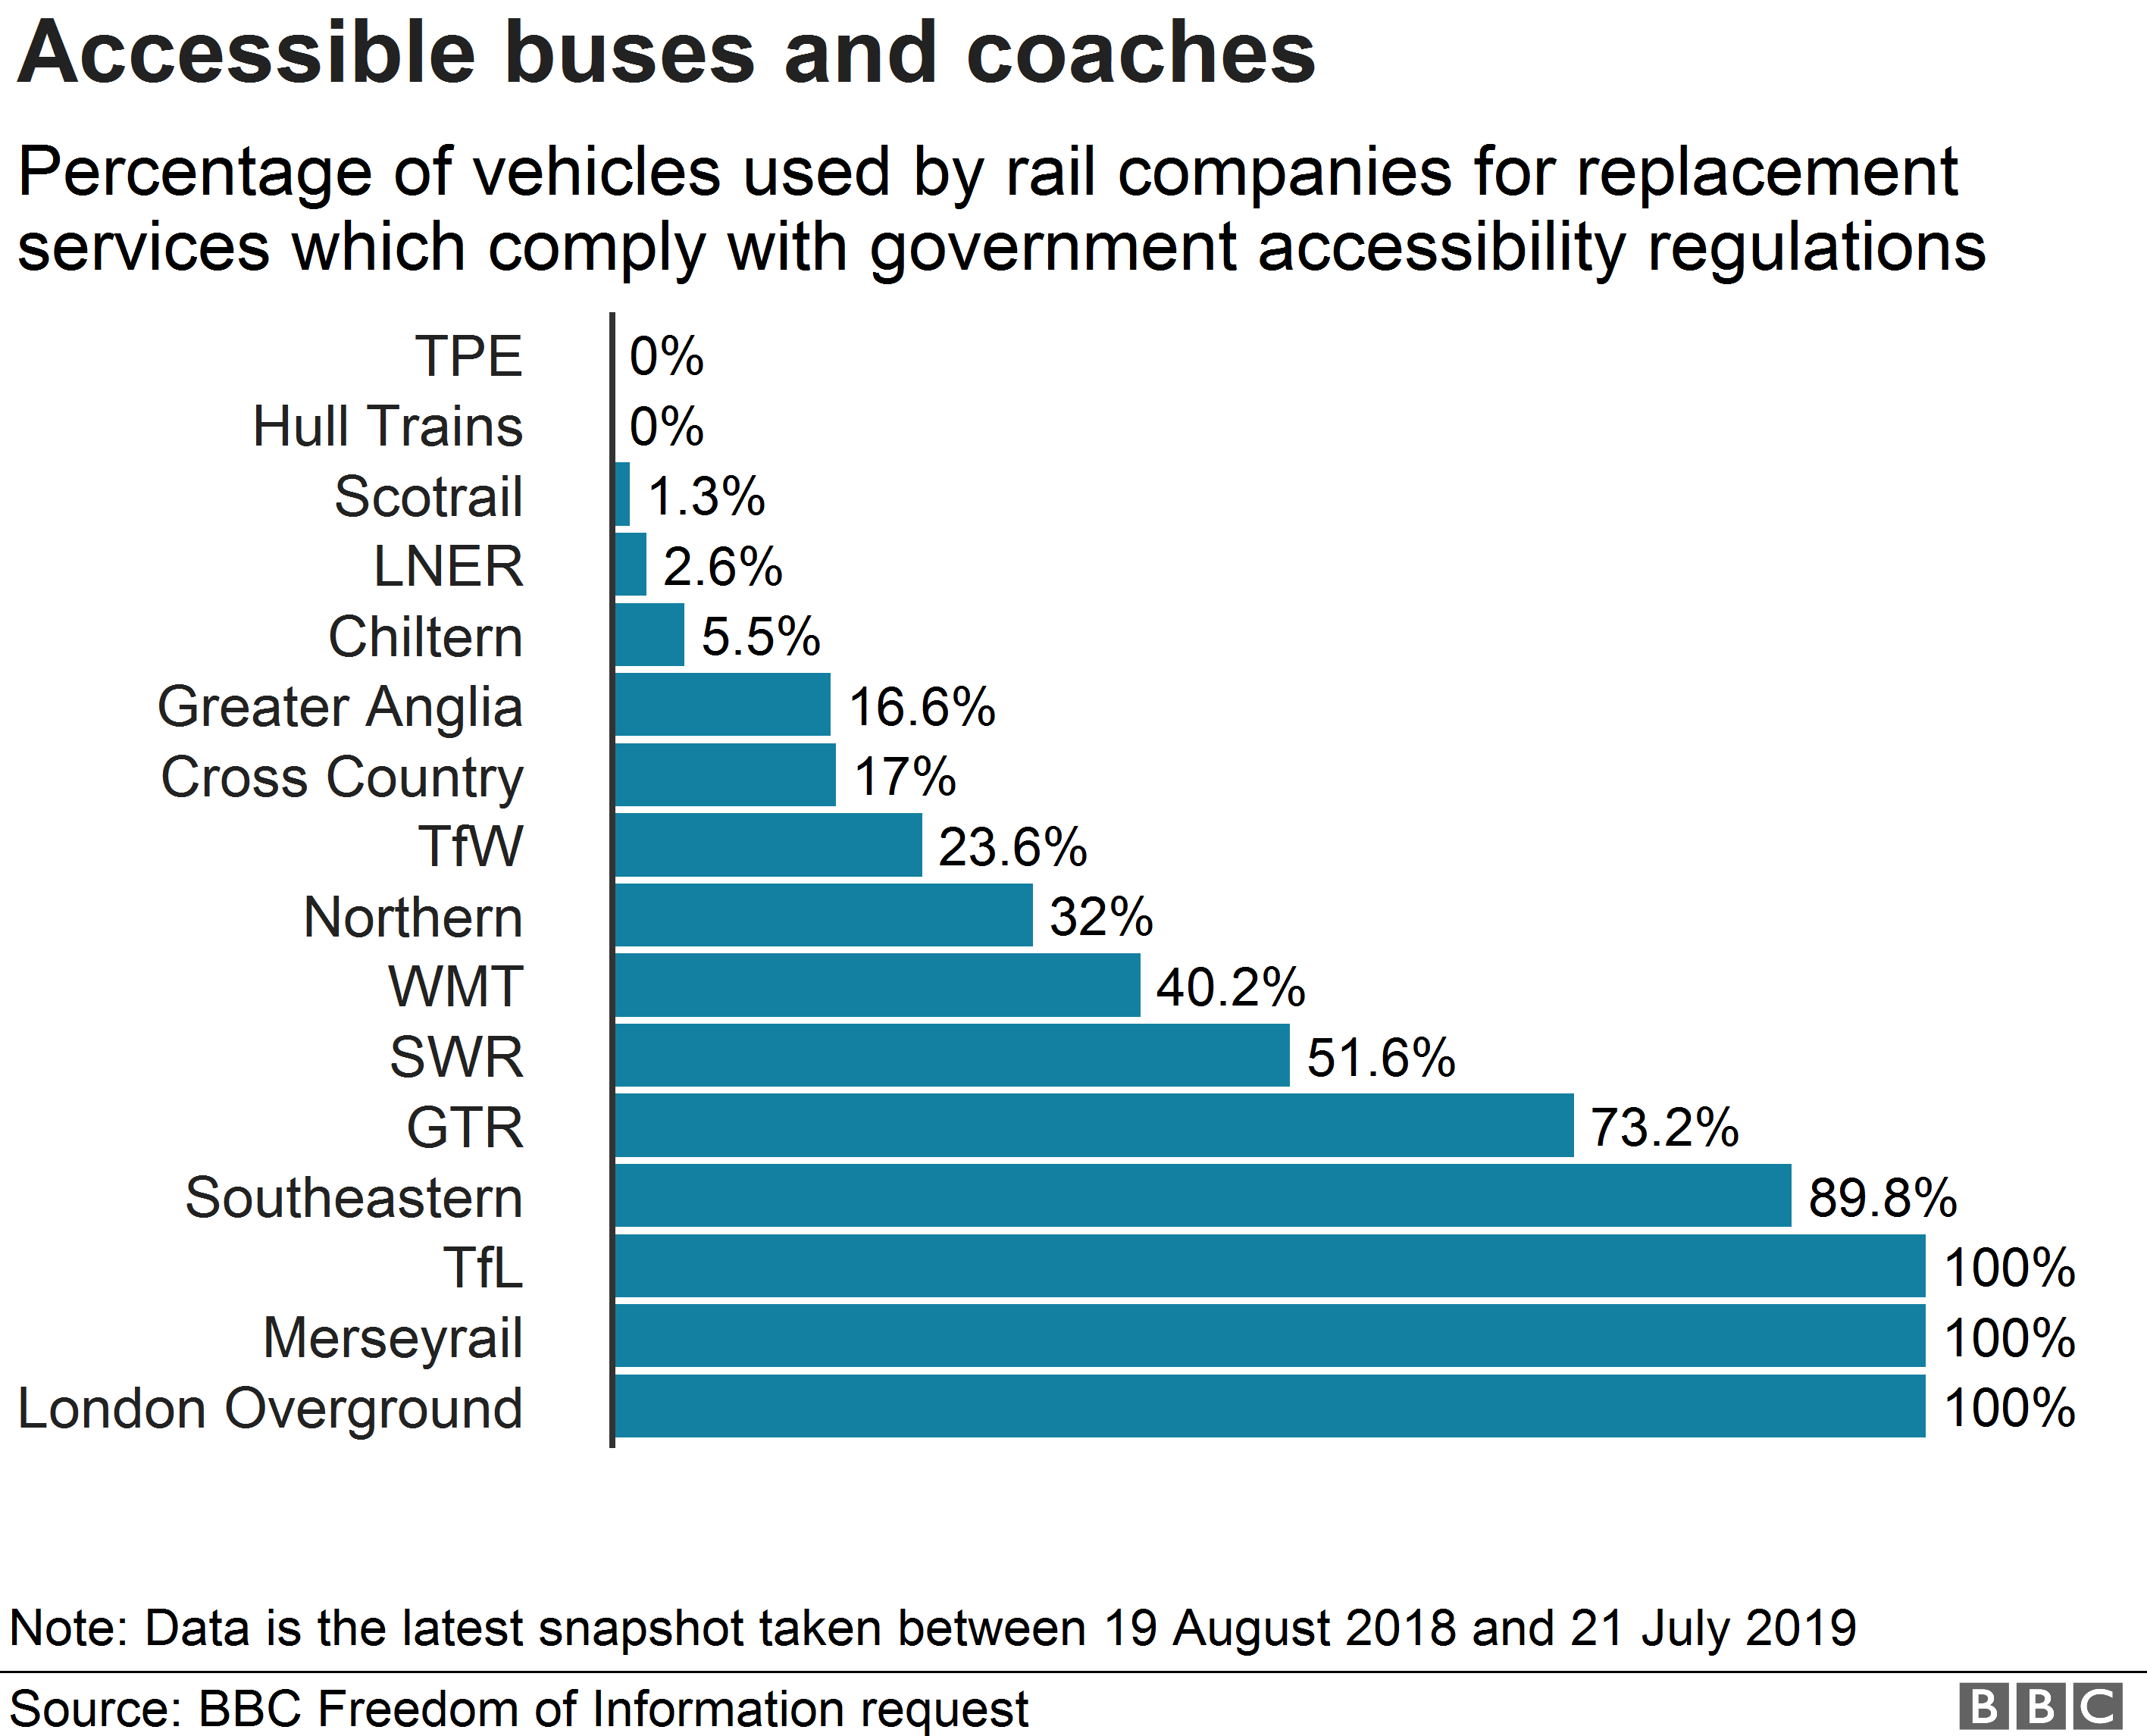 Percentage of accessible vehicles used by rail operator for rail replacement services